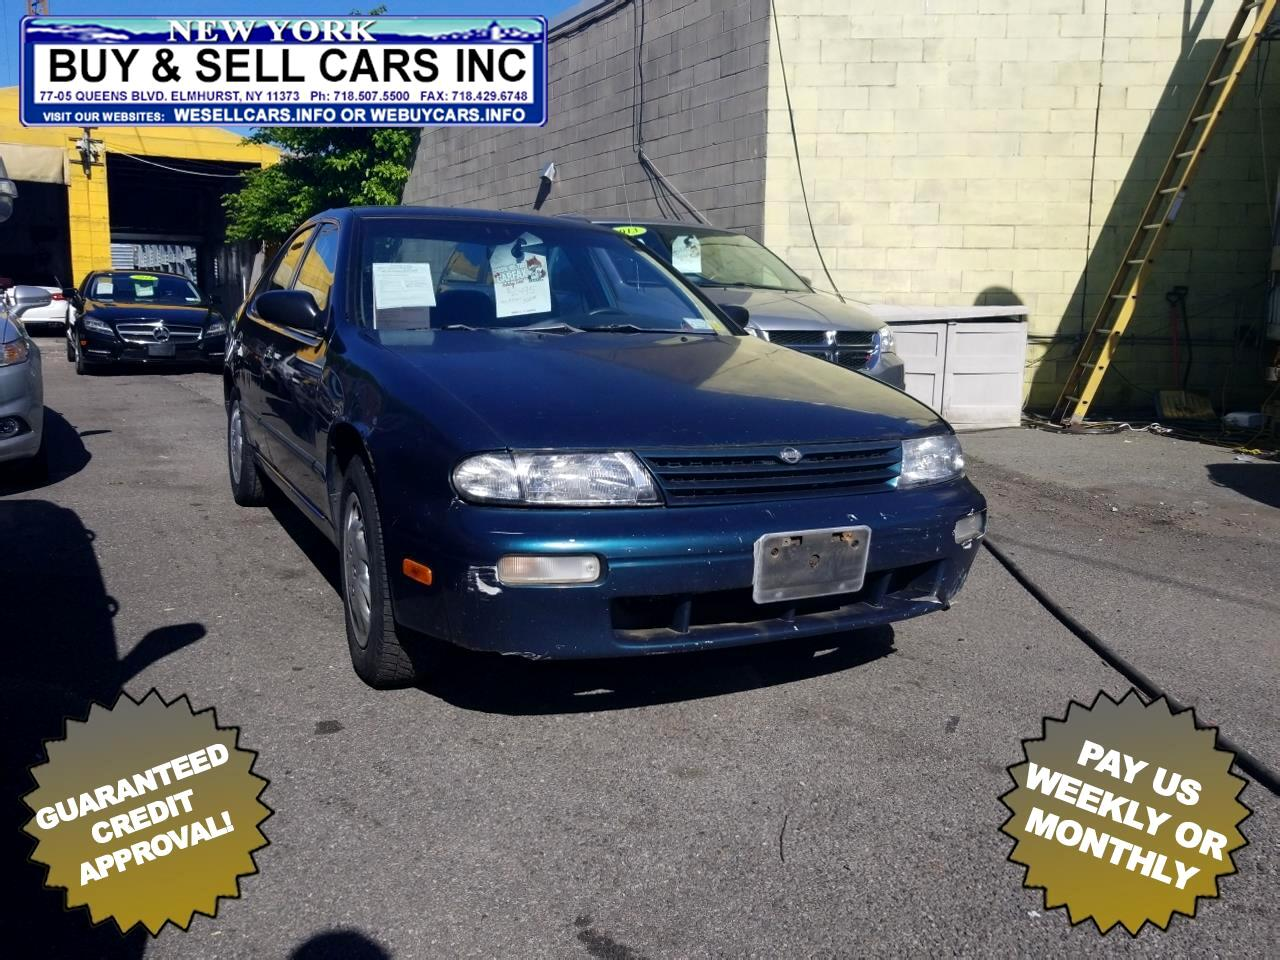 1997 Nissan Altima 4dr Sdn GXE Auto